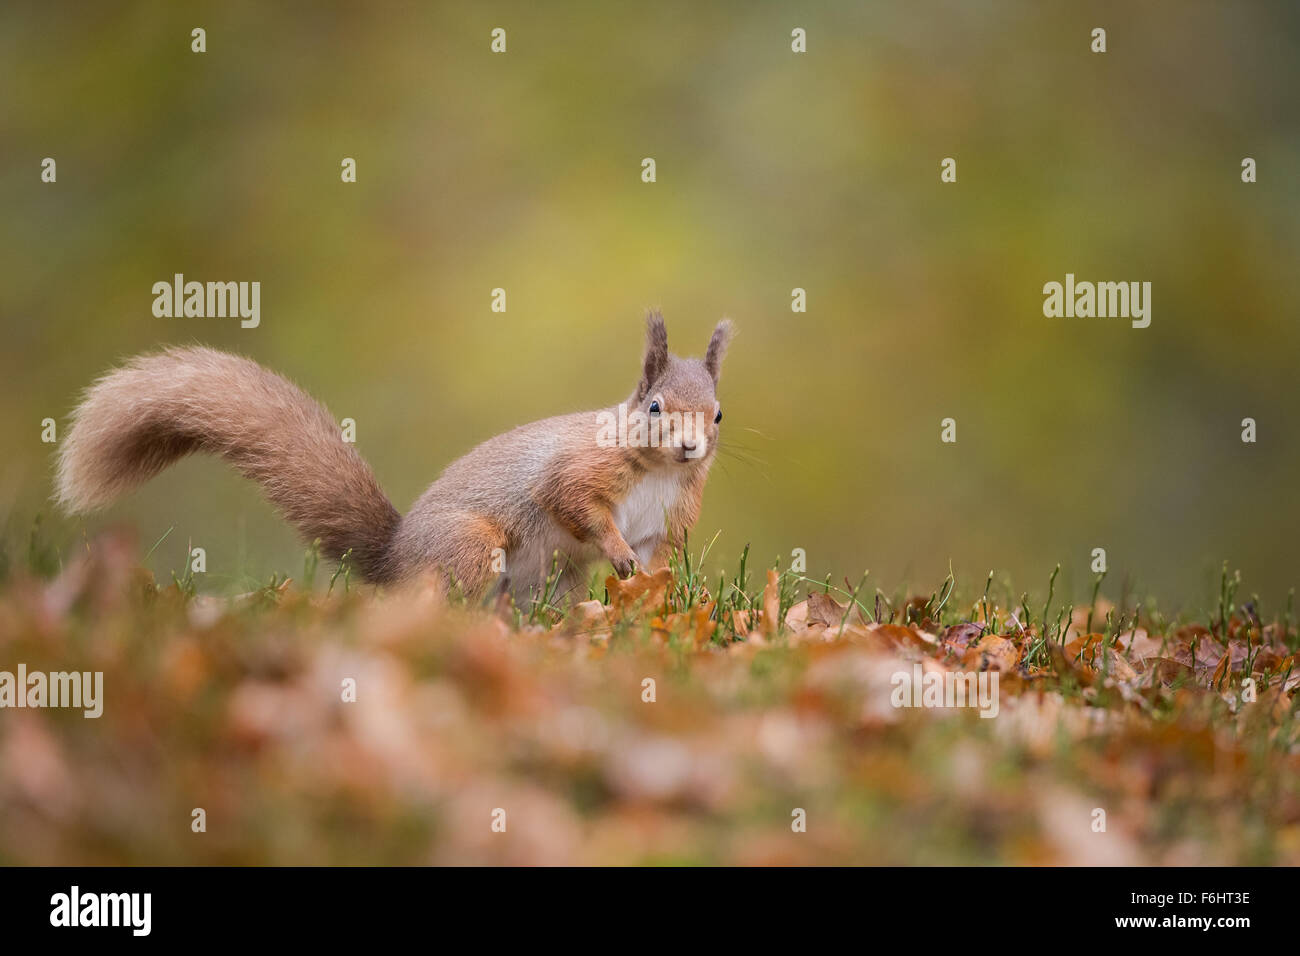 Red Squirrel (Sciurus Vulgaris) in a forest in the Cairngorms National Park, Scotland. Stock Photo